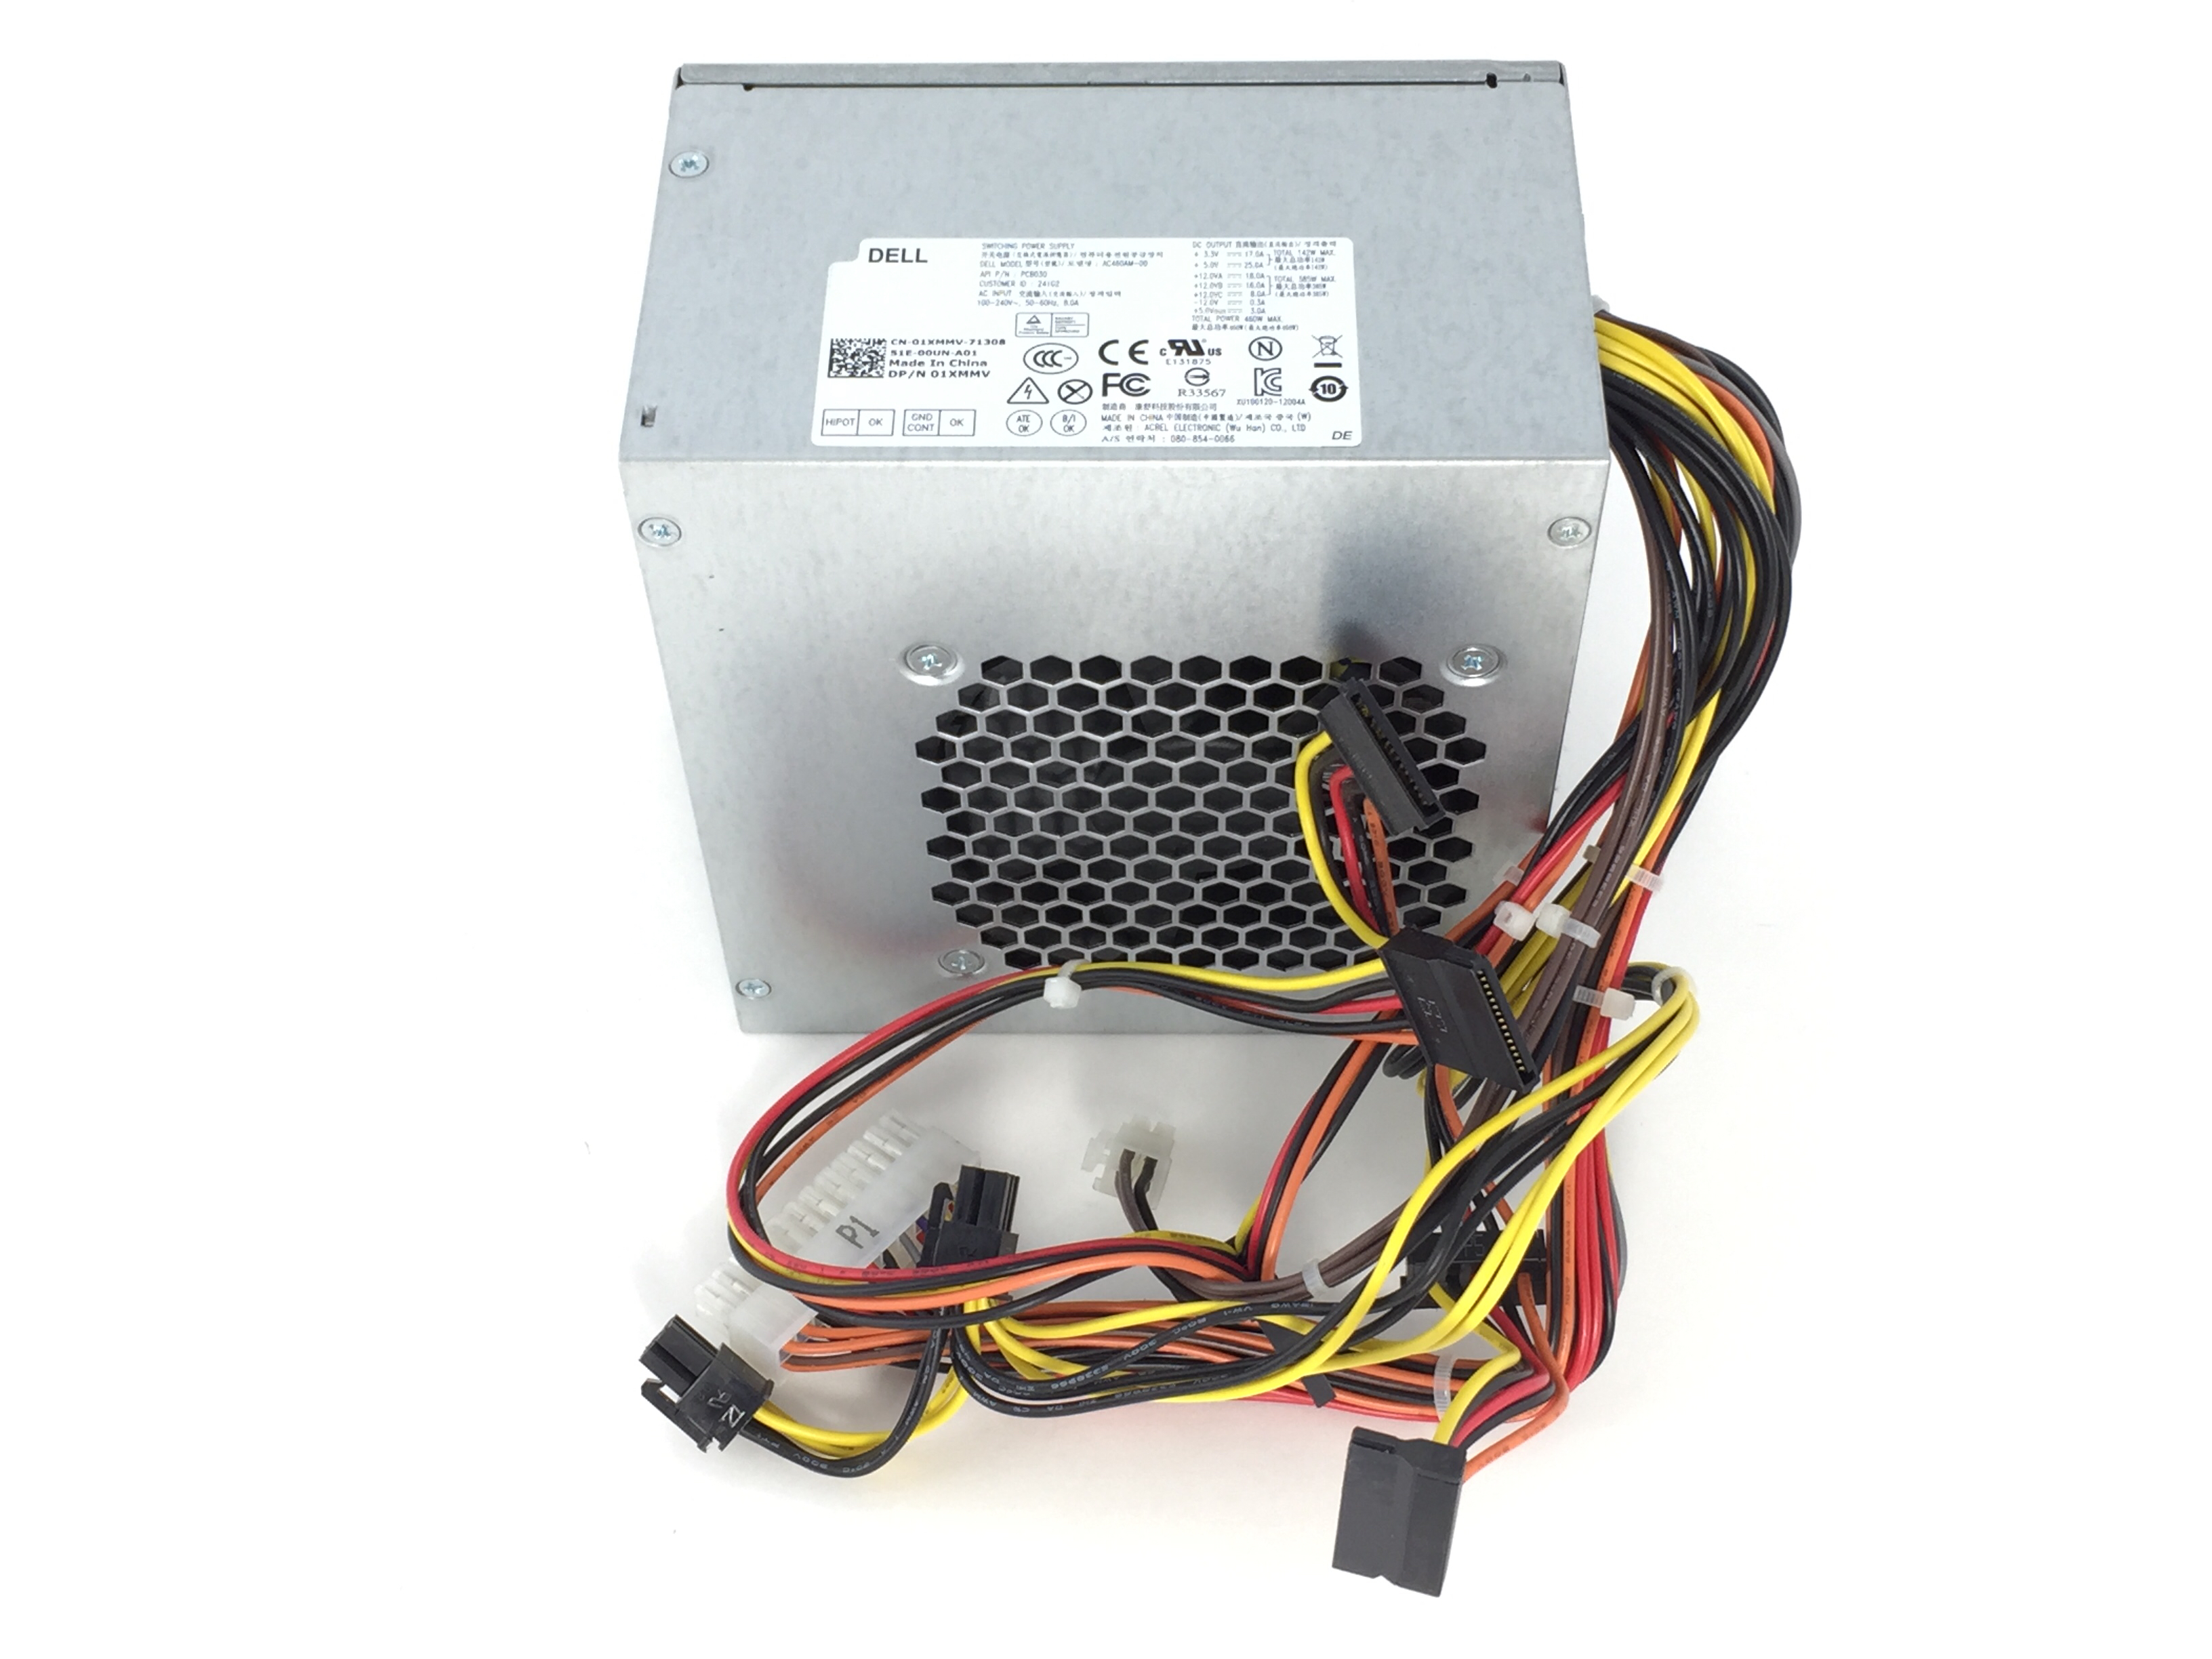 Dell Ac460Am-00 Xps 8700 460W Power Supply (1XMMV)